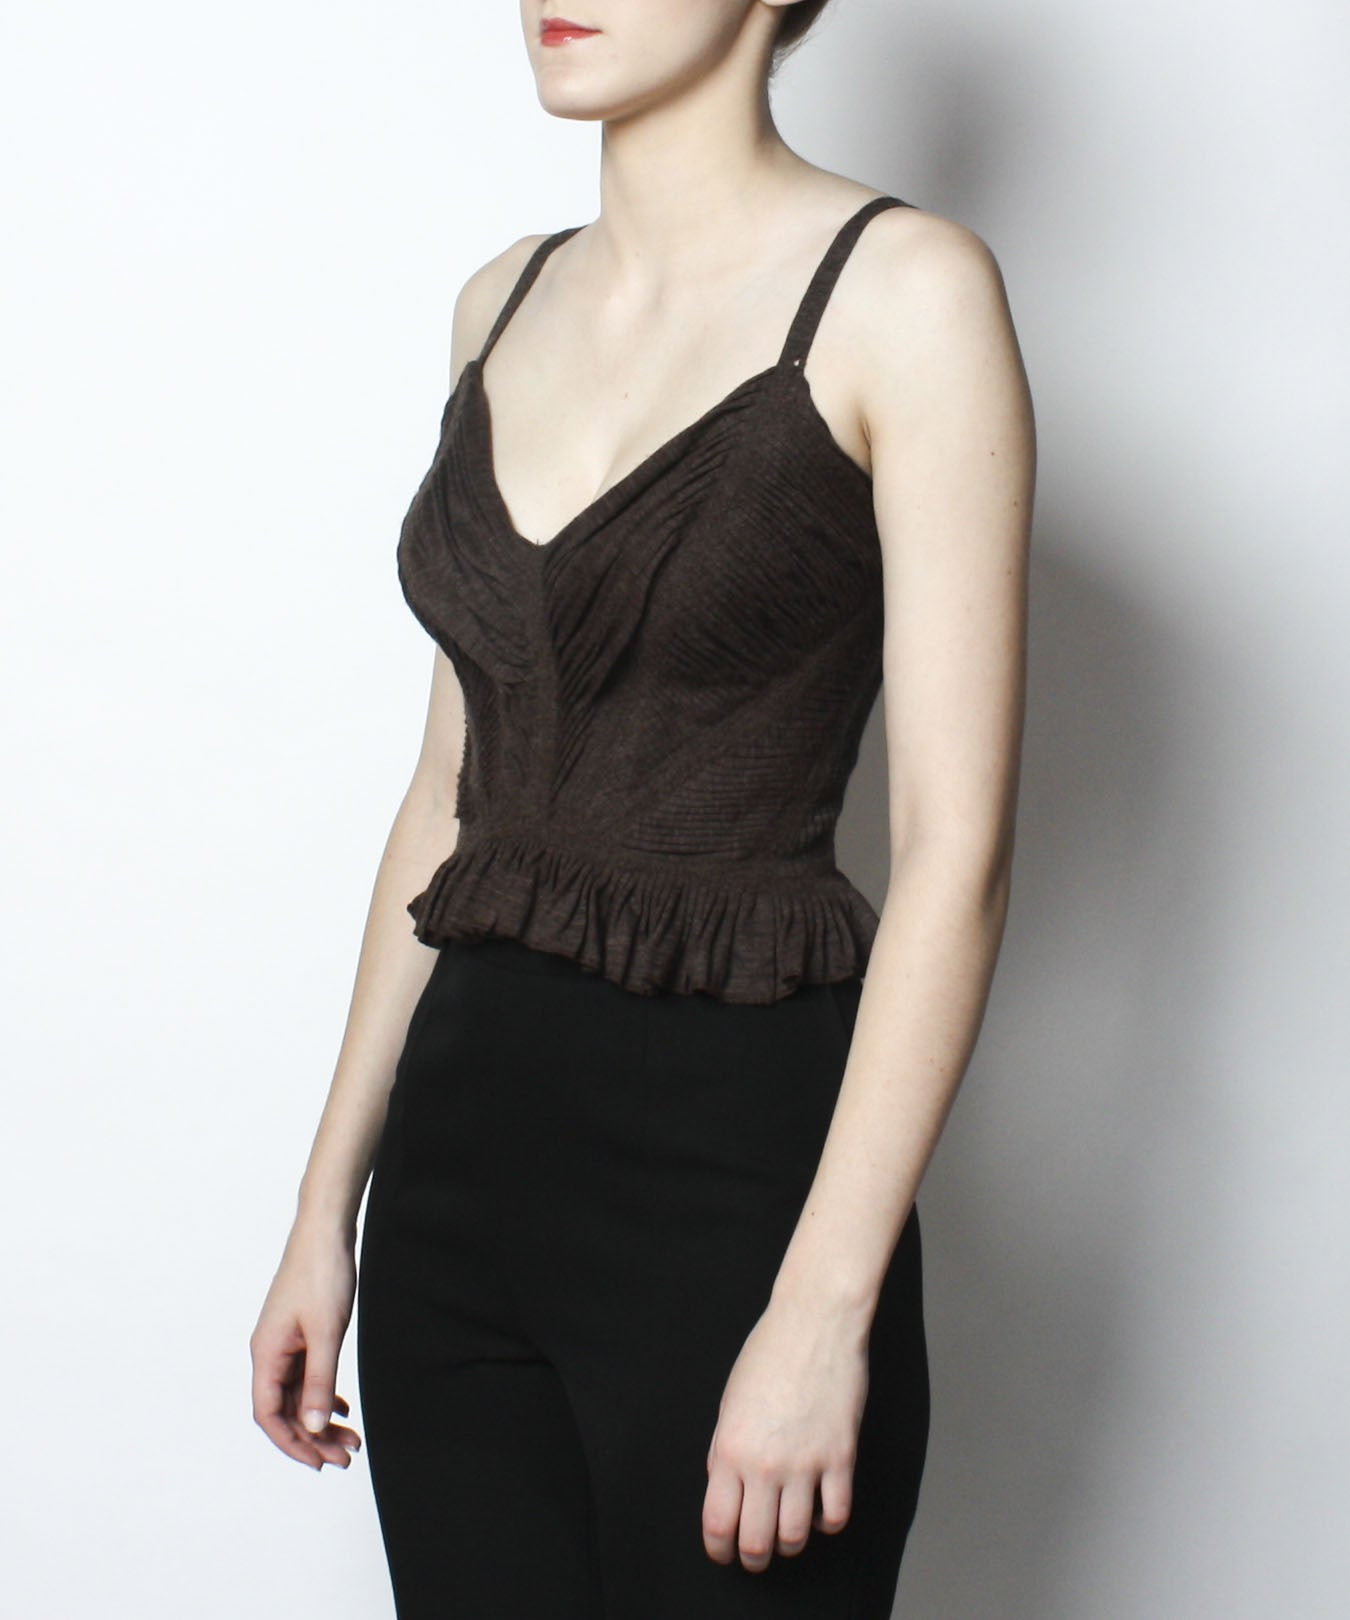 Jean Paul Gaultier Brown Wool Tank Top - C.Madeleine's